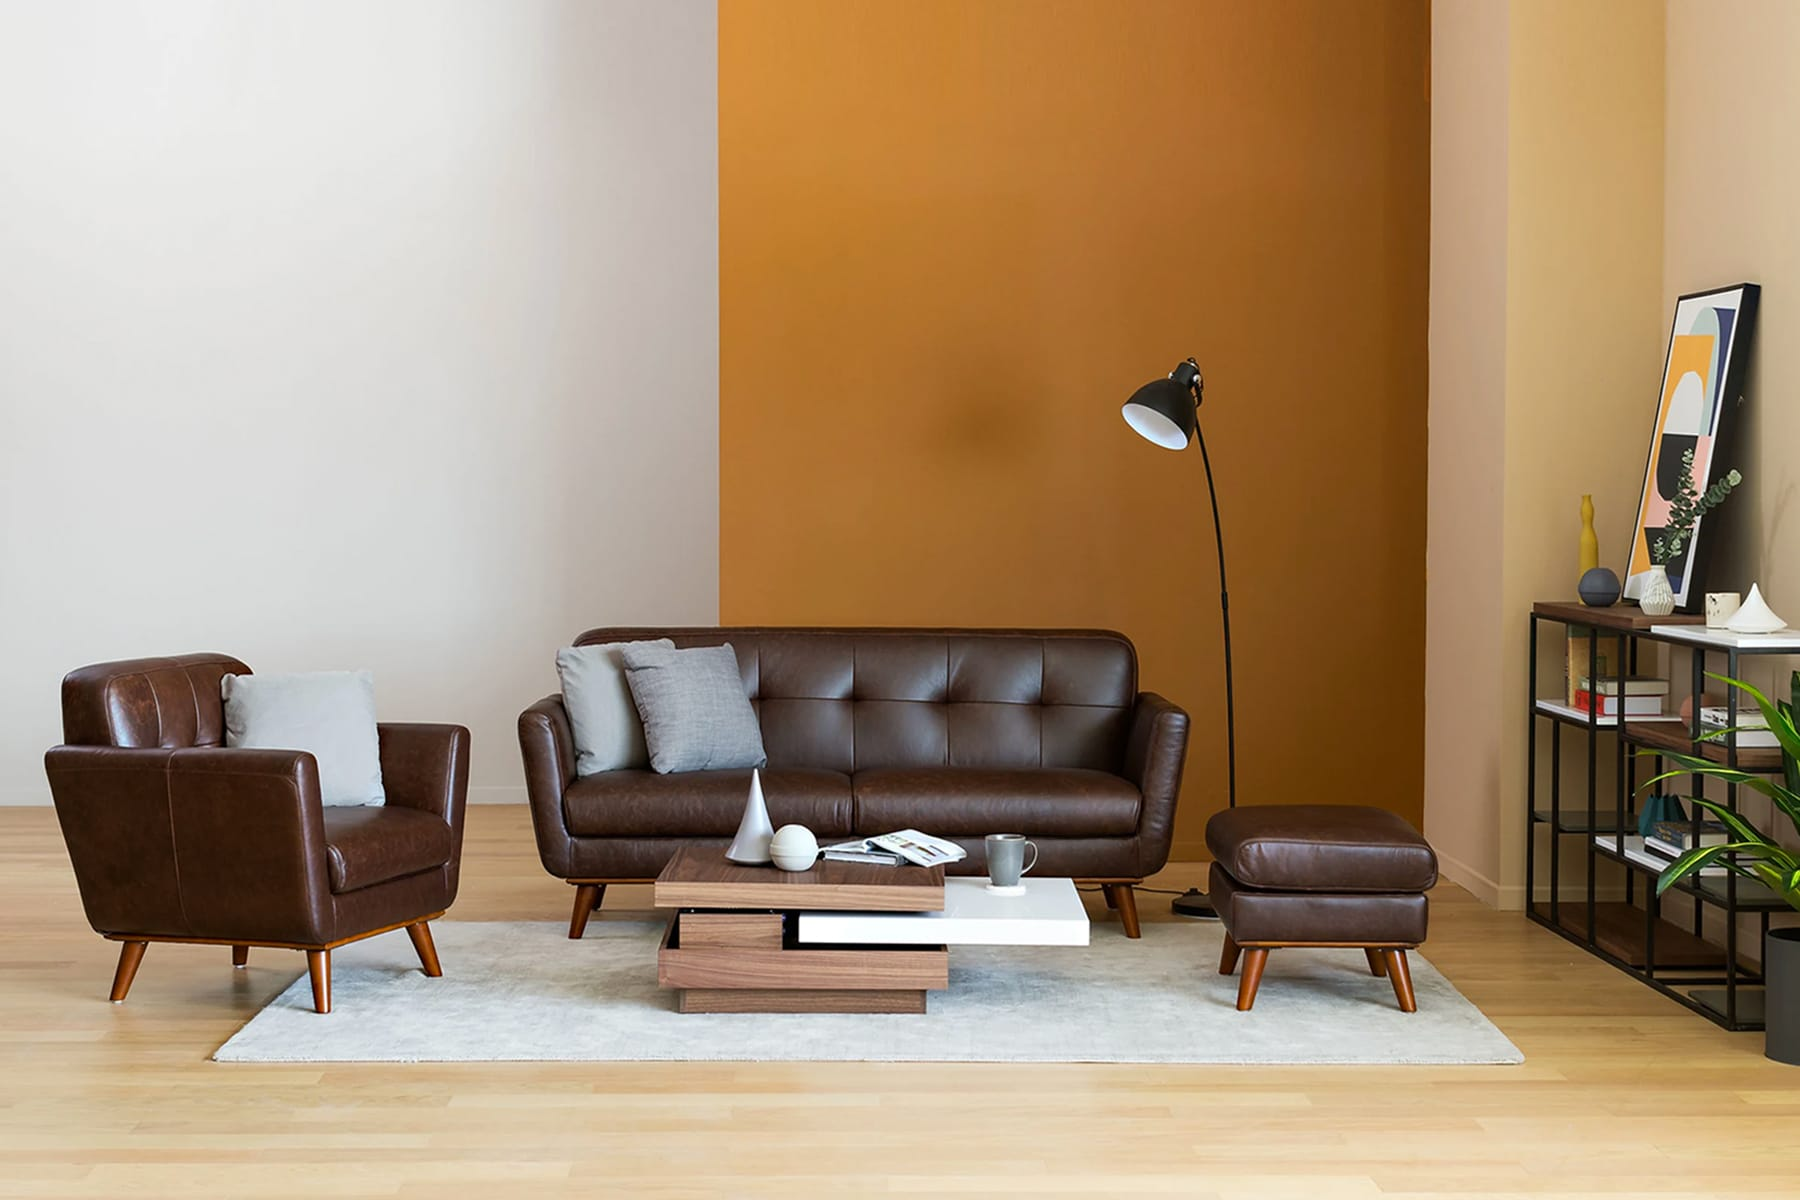 brown learther sofa, armchair and ottoman in a contemporary living room